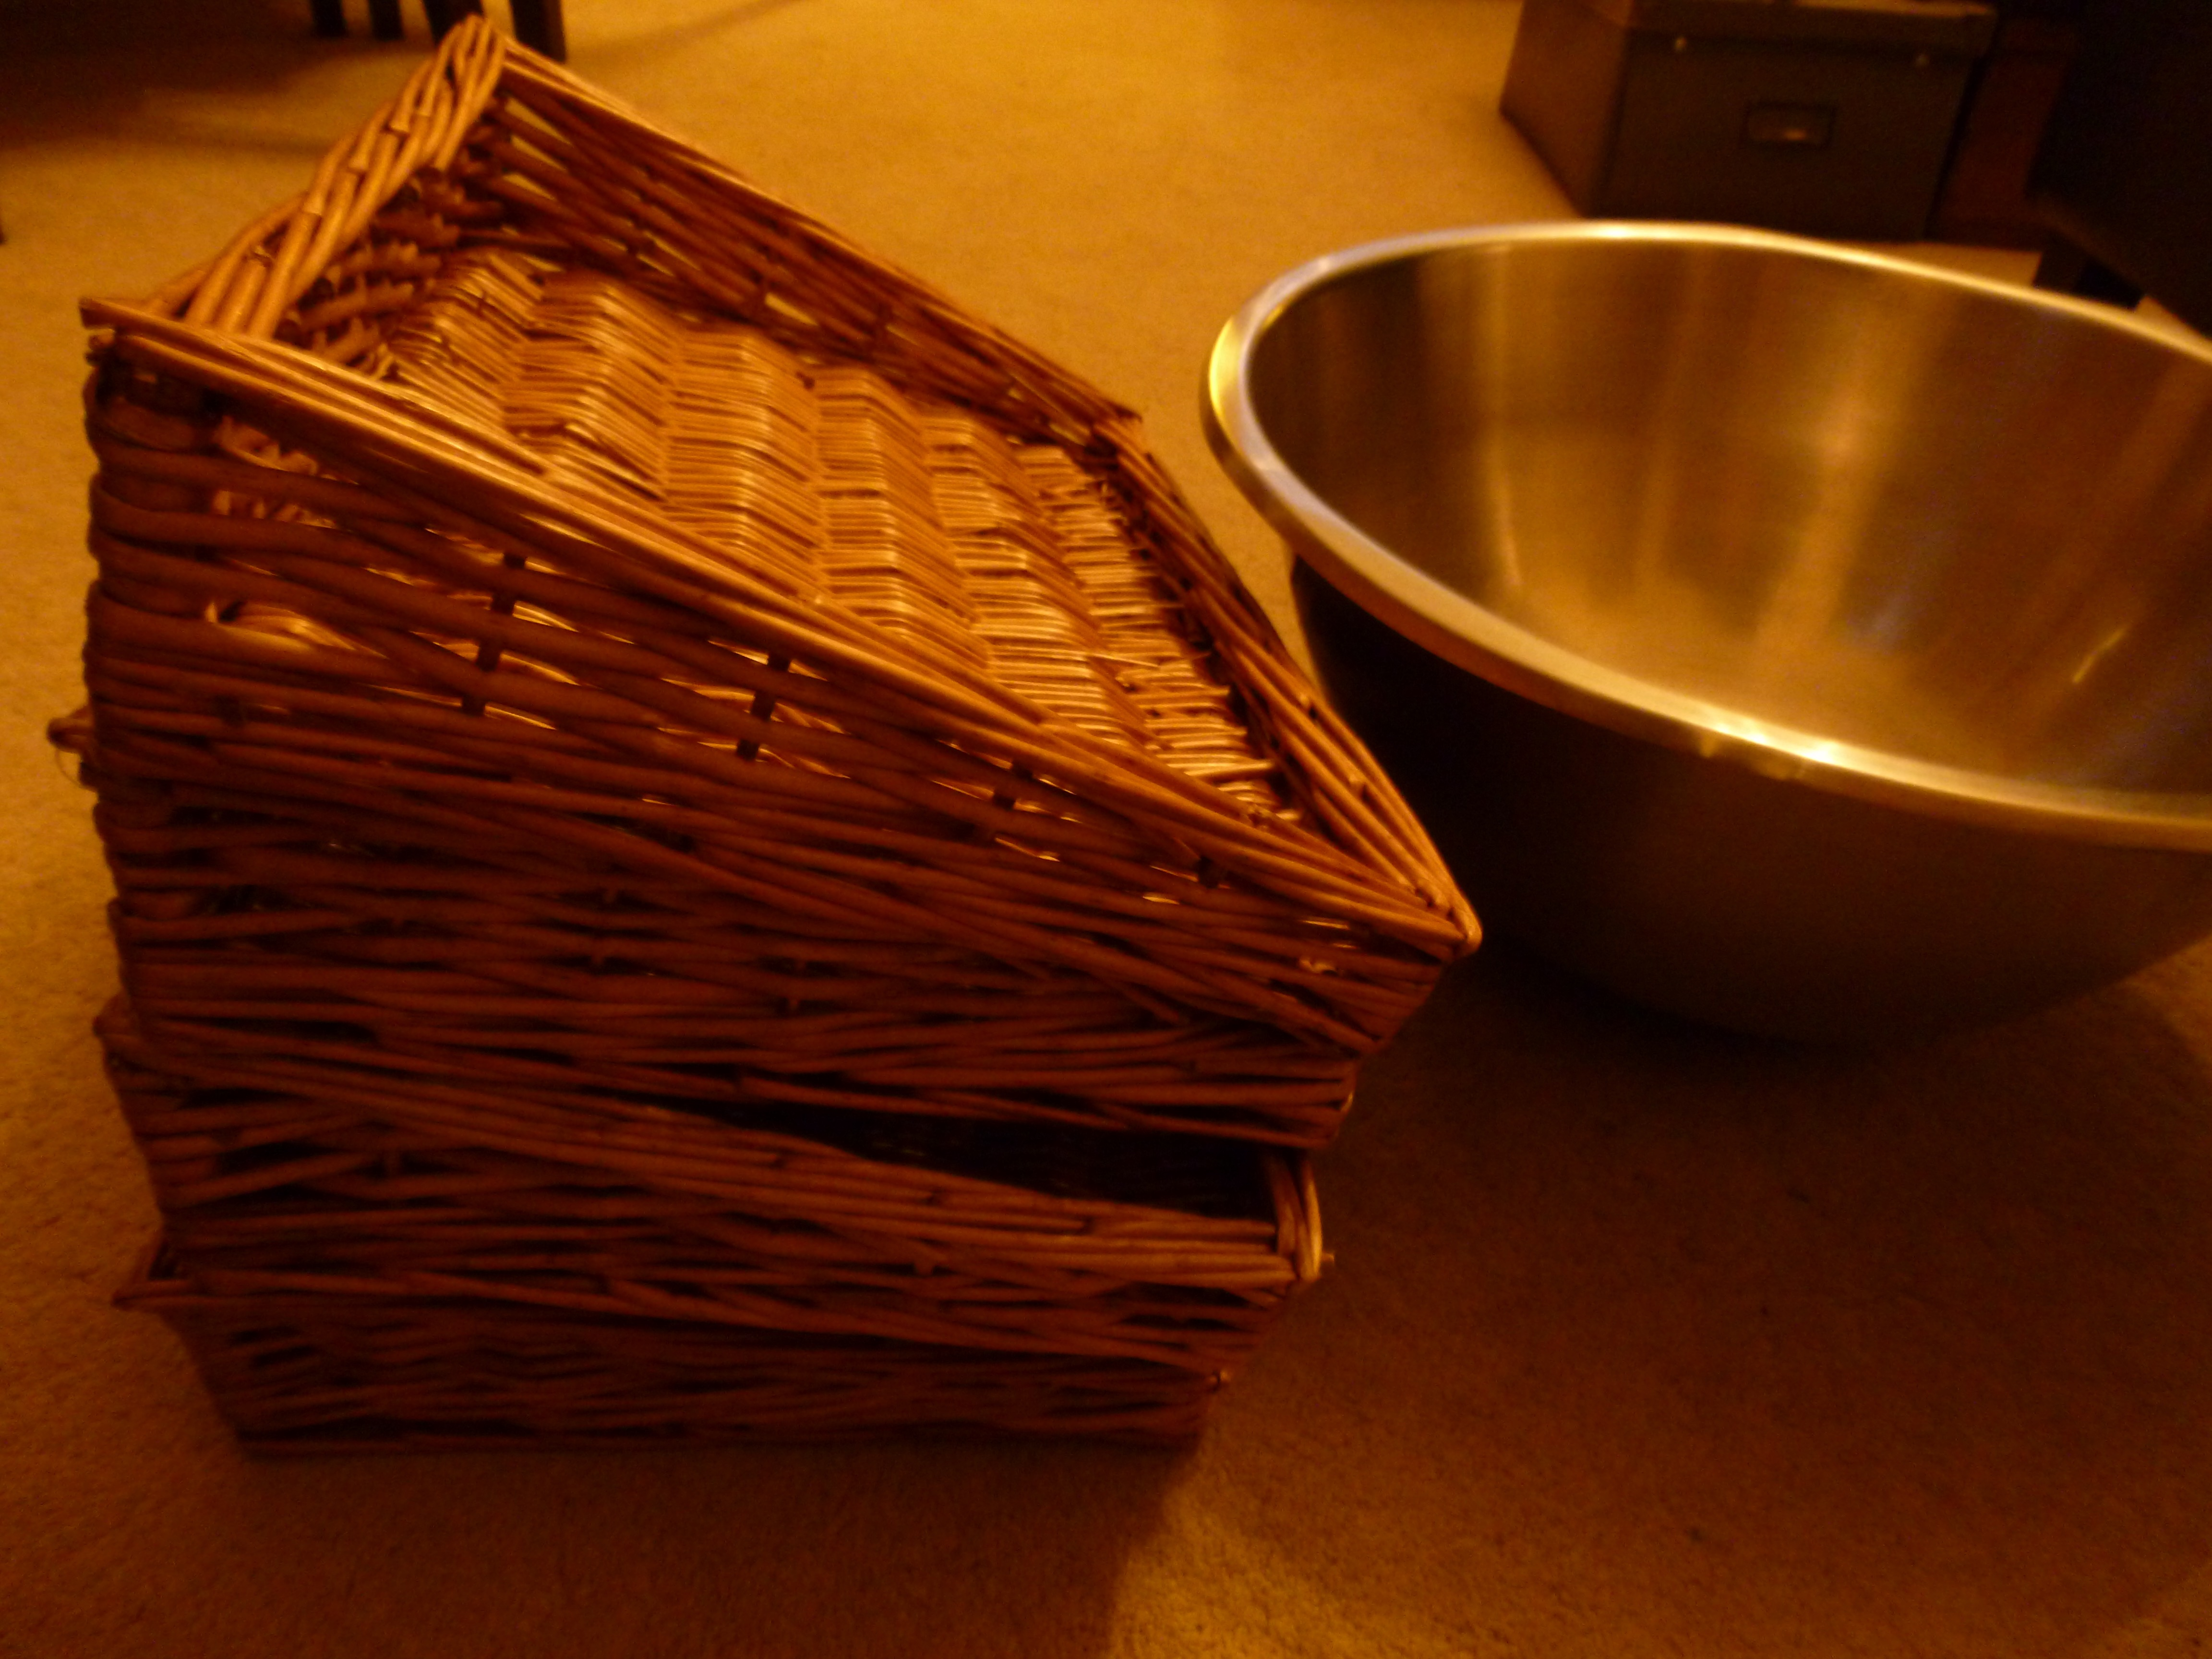 Baskets for my boulangerie